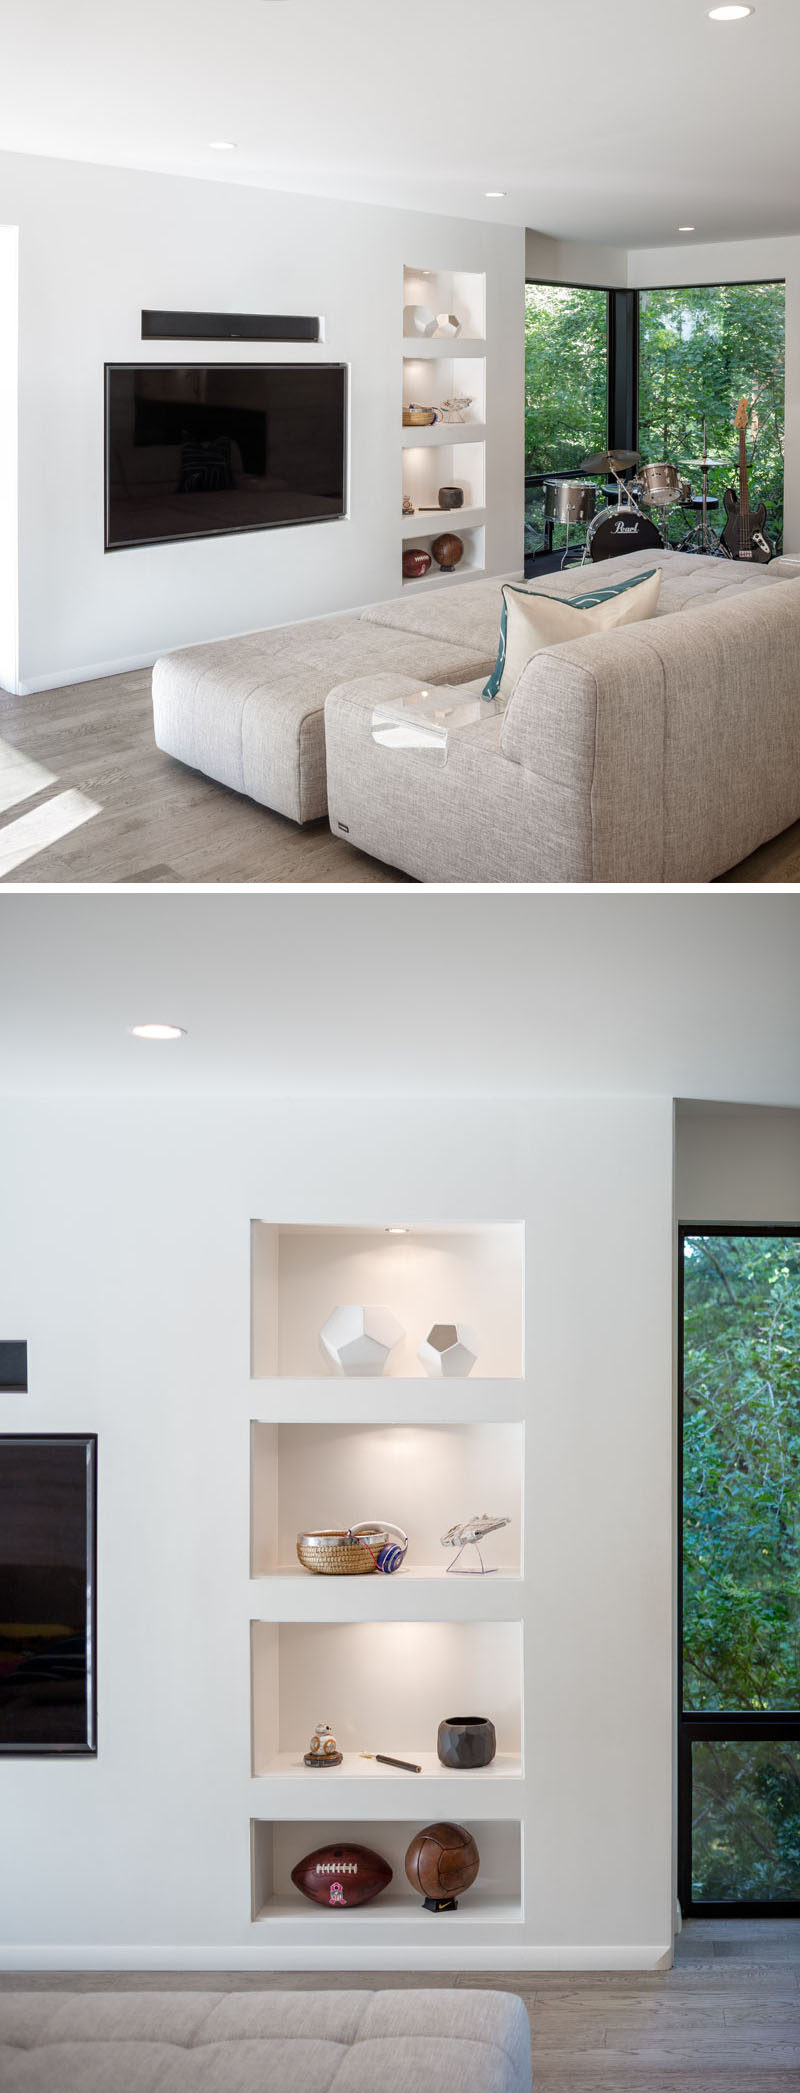 This modern family room has a television that sits flush with the wall, recessed display shelving with lighting, andtouch latch hidden storage. #Shelving #FamilyRoom